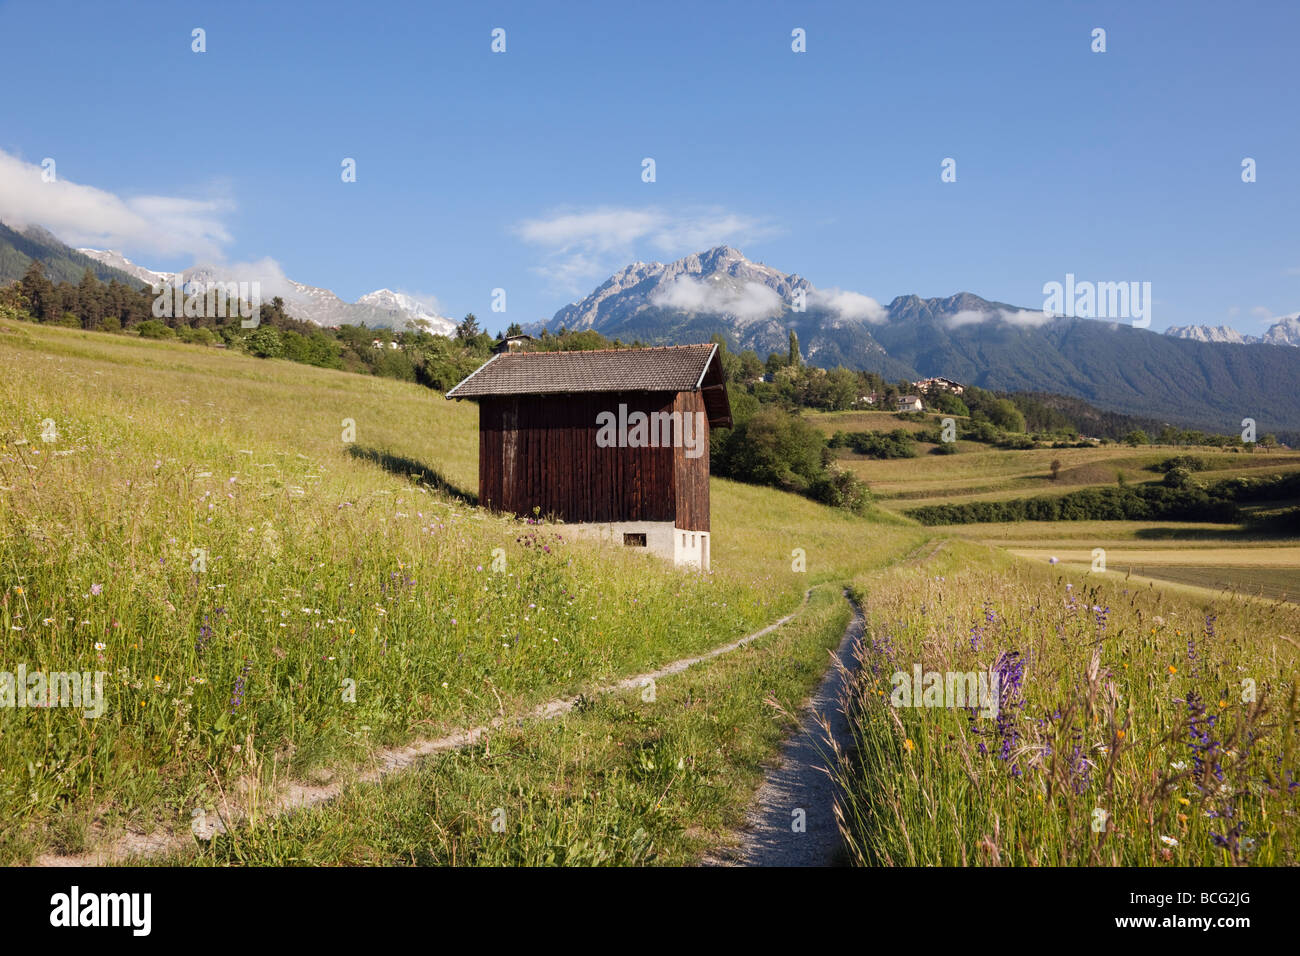 Track and barn in summer Alpine flower meadows in green valley in early morning. Imst Tyrol Austria Europe. - Stock Image